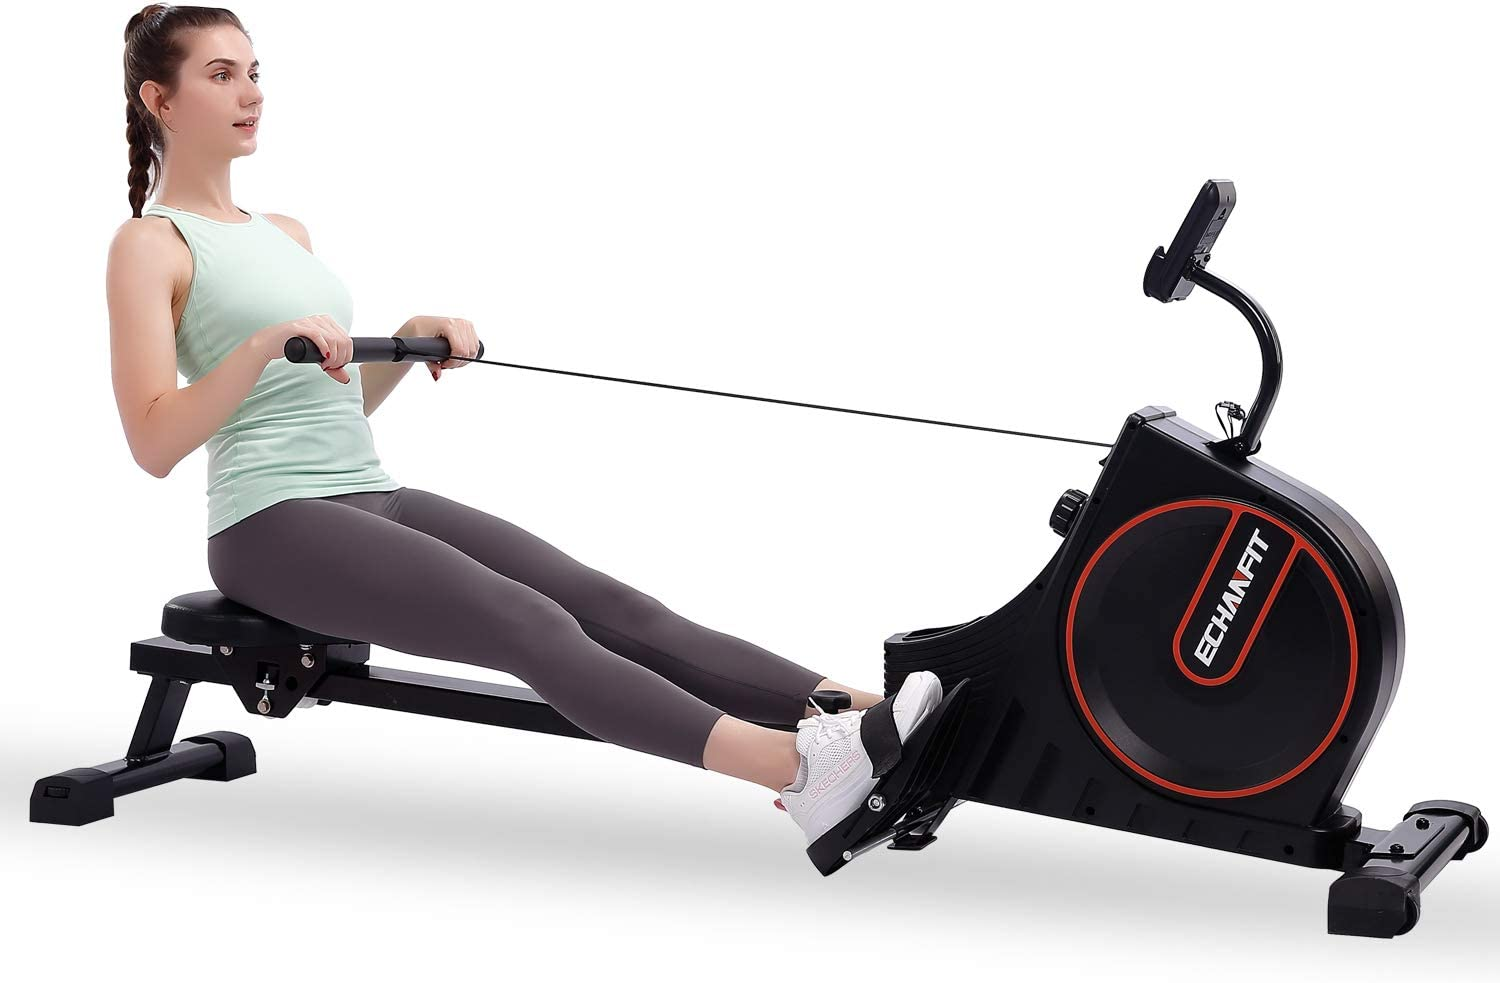 ECHANFIT Rowing Machine Magnetic Rower for Home Use Foldable 16 Quiet Resistance Levels Cardio Workout for Fitness with LCD Monitor Transport Wheels and Adjustable Console Angle